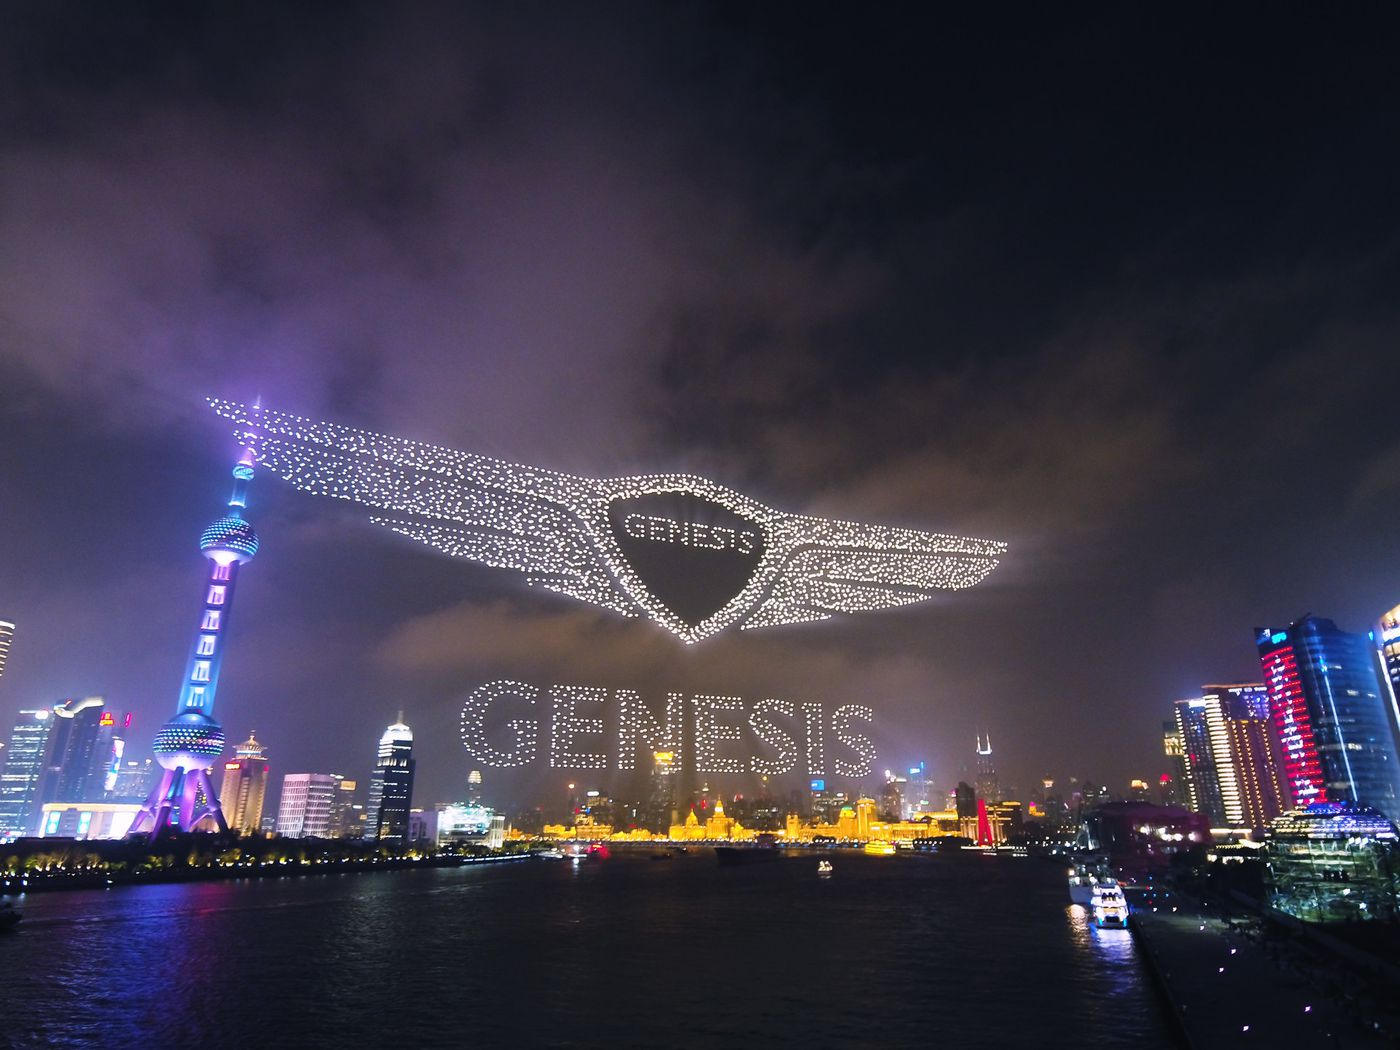 Genesis drone show  drone advertising in China